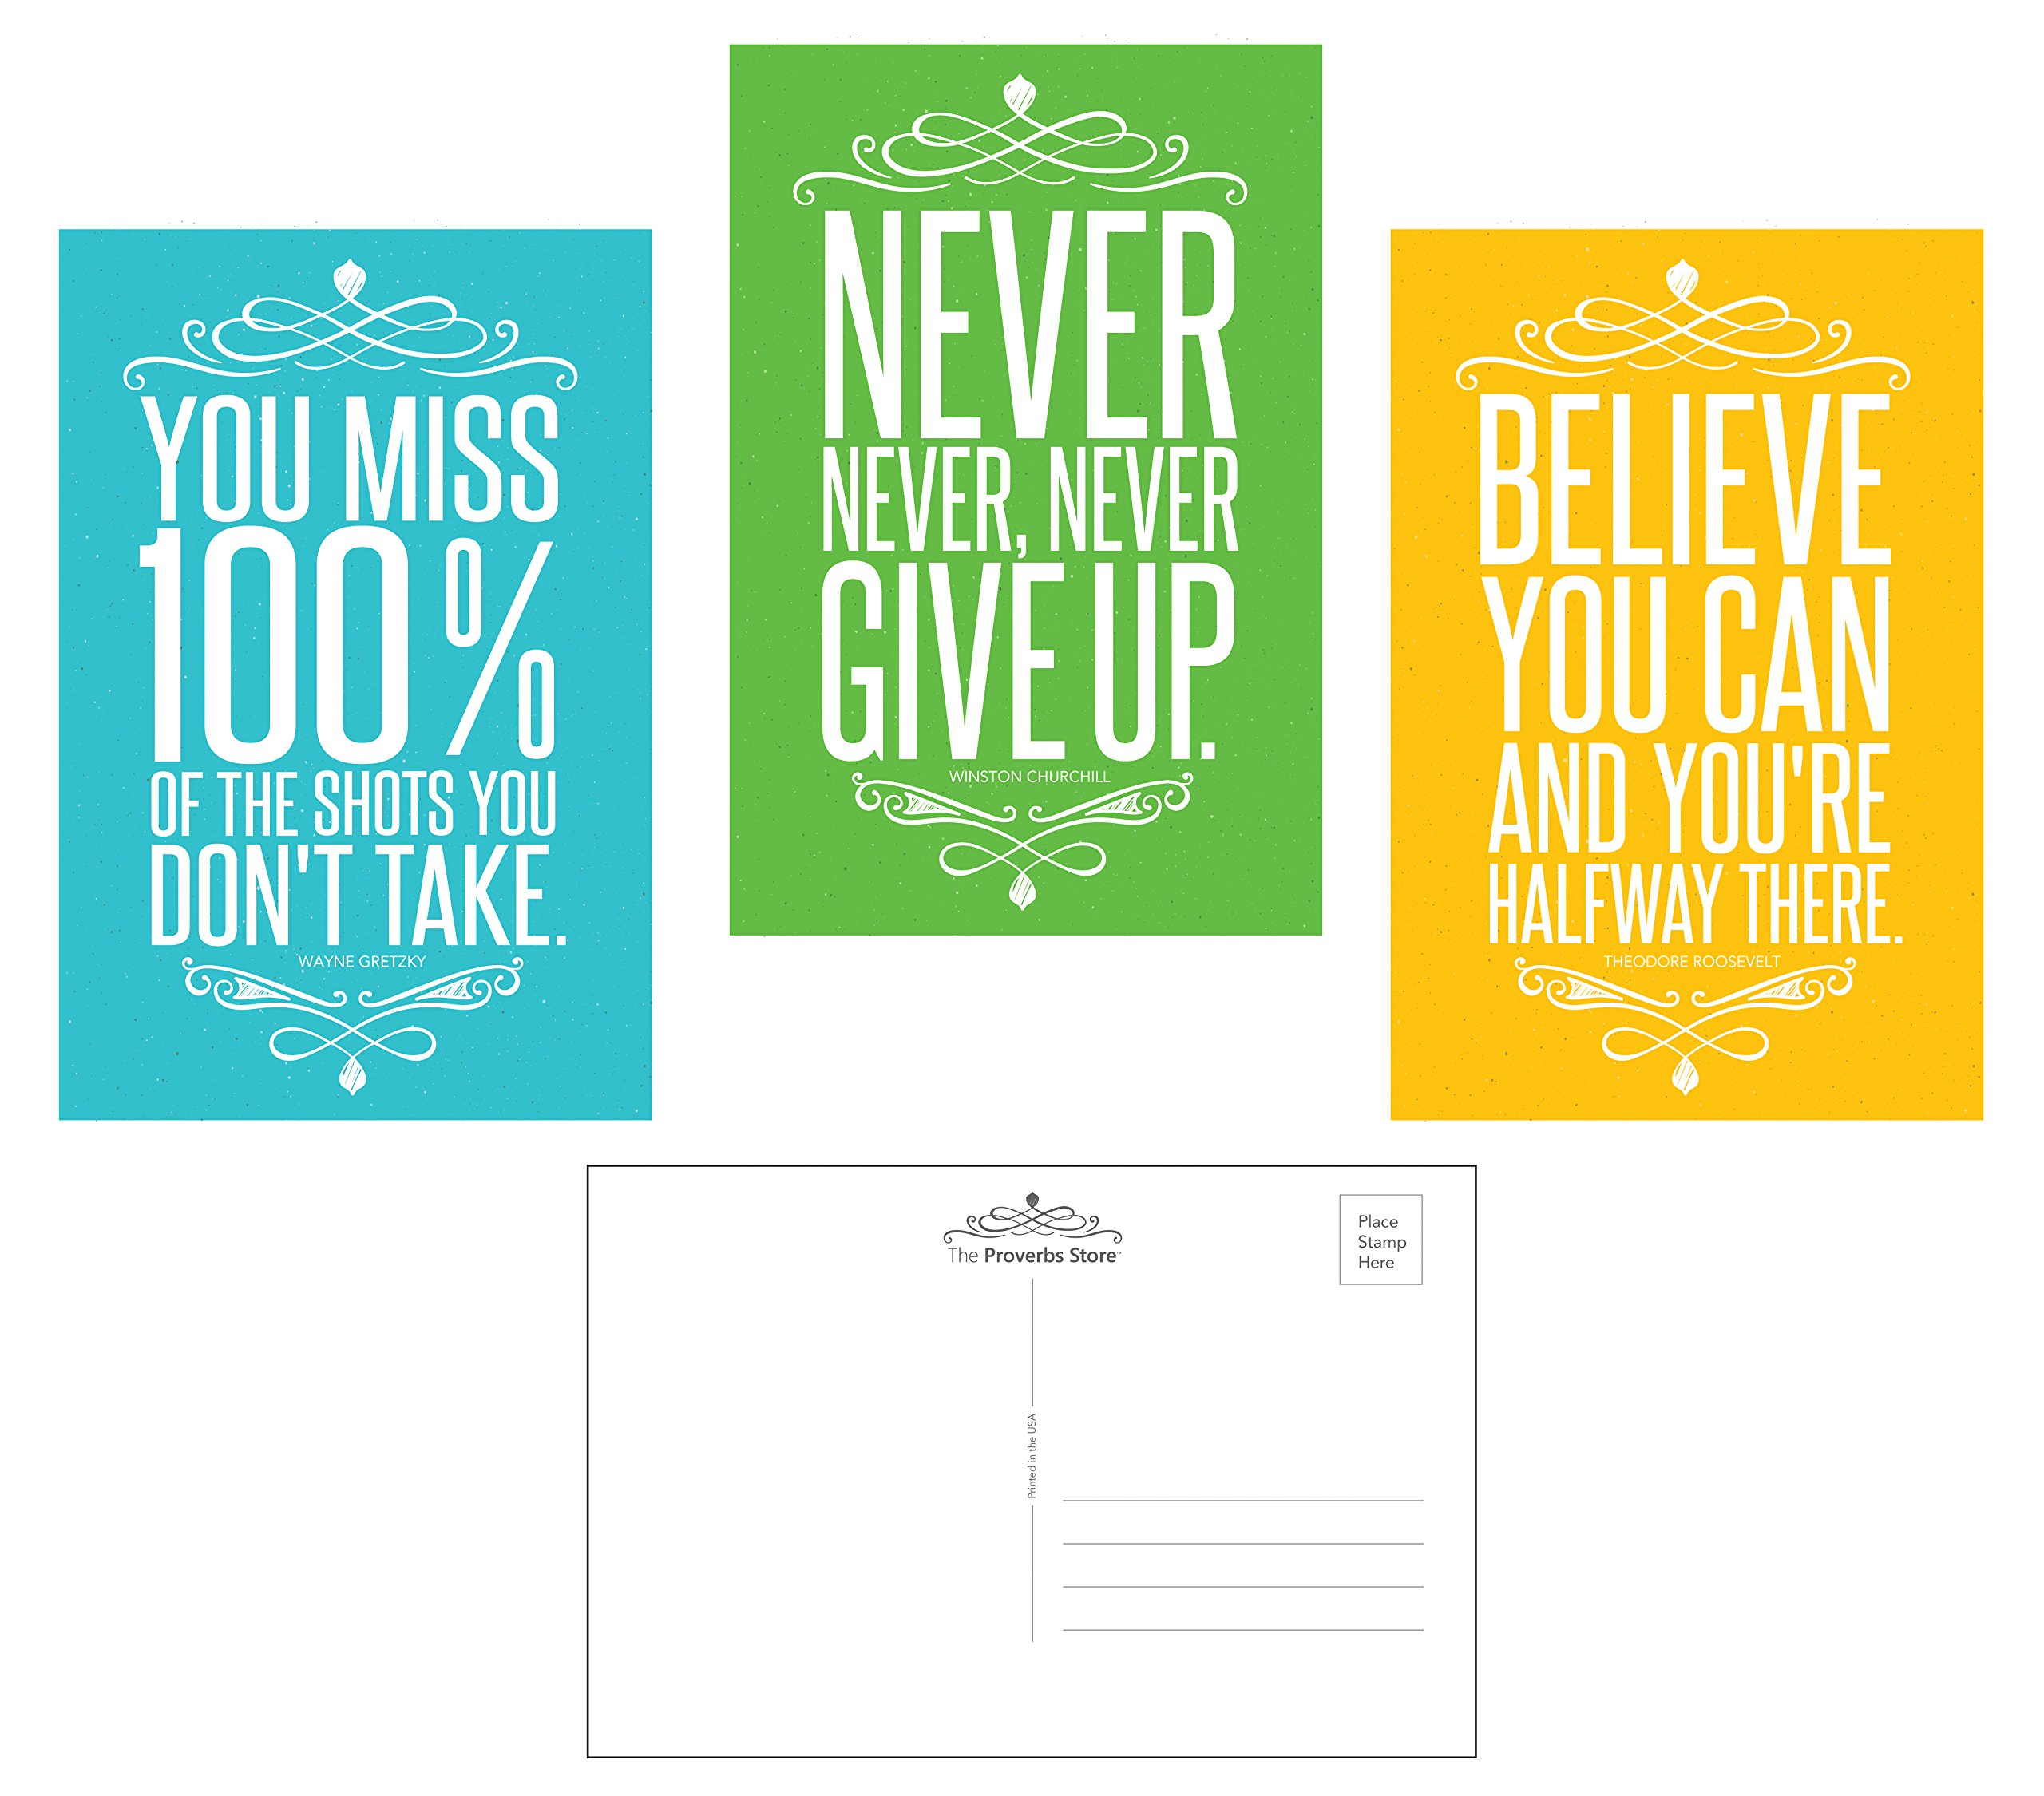 Famous Quotes Motivational Inspirational Entrepreneur Business (30 Pack) Blank POSTCARDS Postage Saver (4 x 6 inches). Teacher Gifts to Students Coworkers Kids Teenagers Teamwork 3 Designs, 10 of each